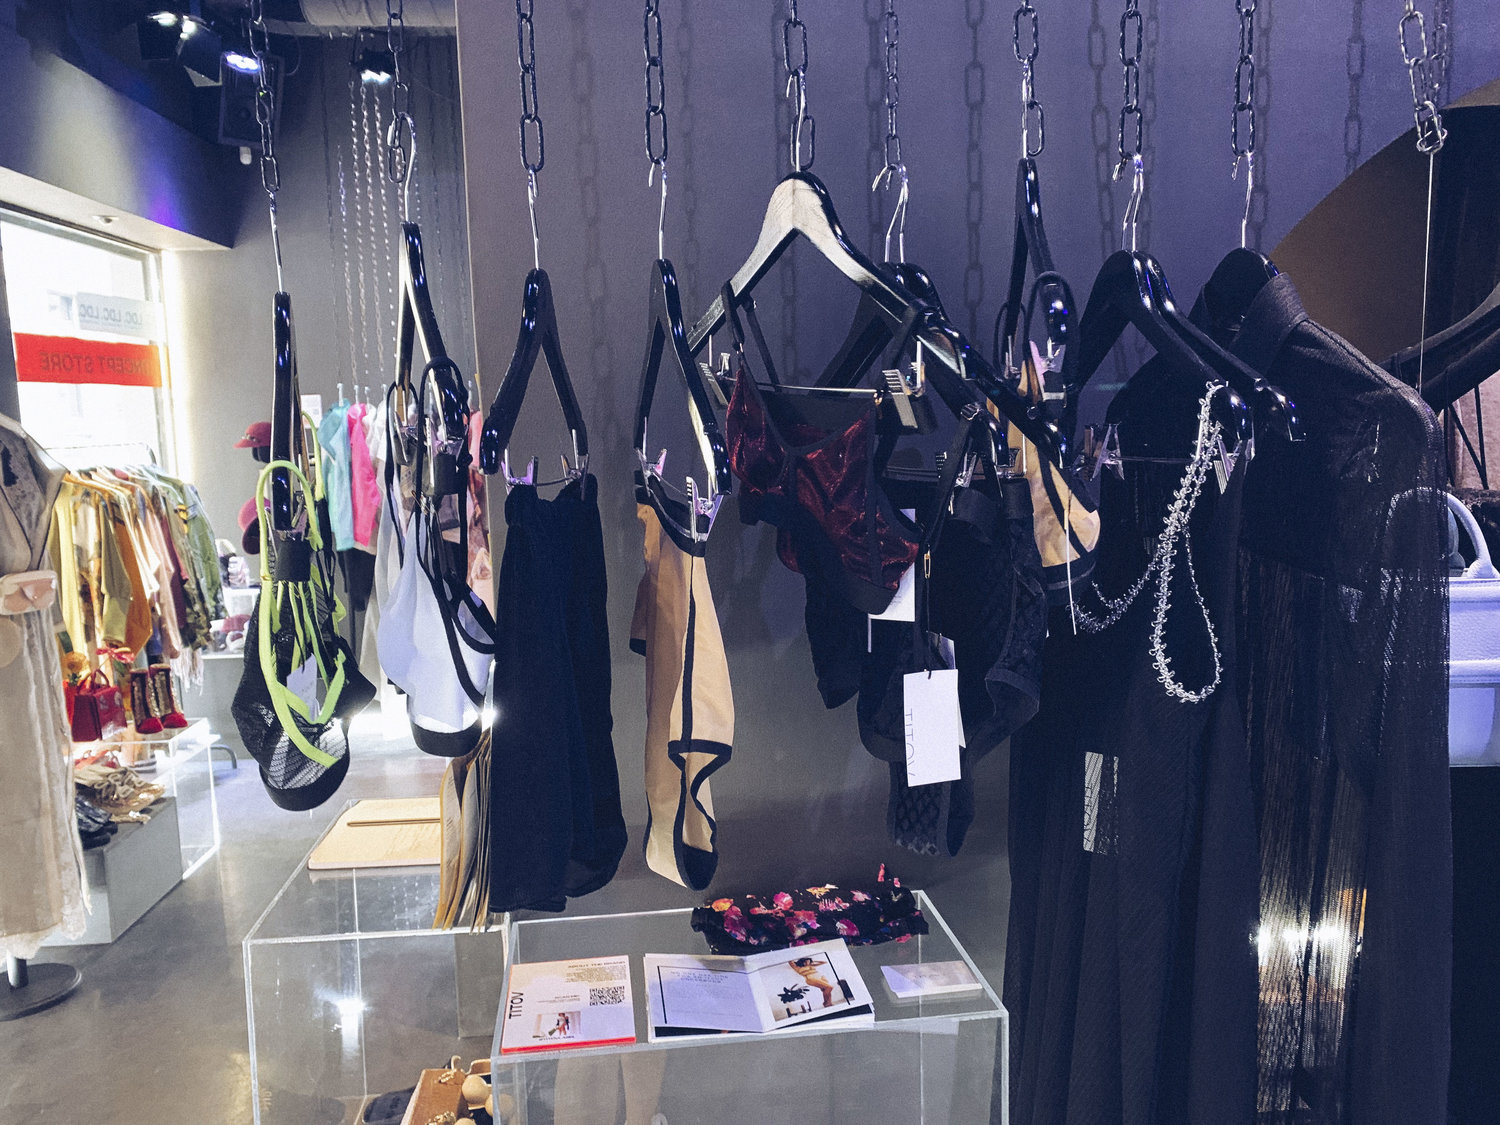 Lingerie hanging in a store in milan during fashion week